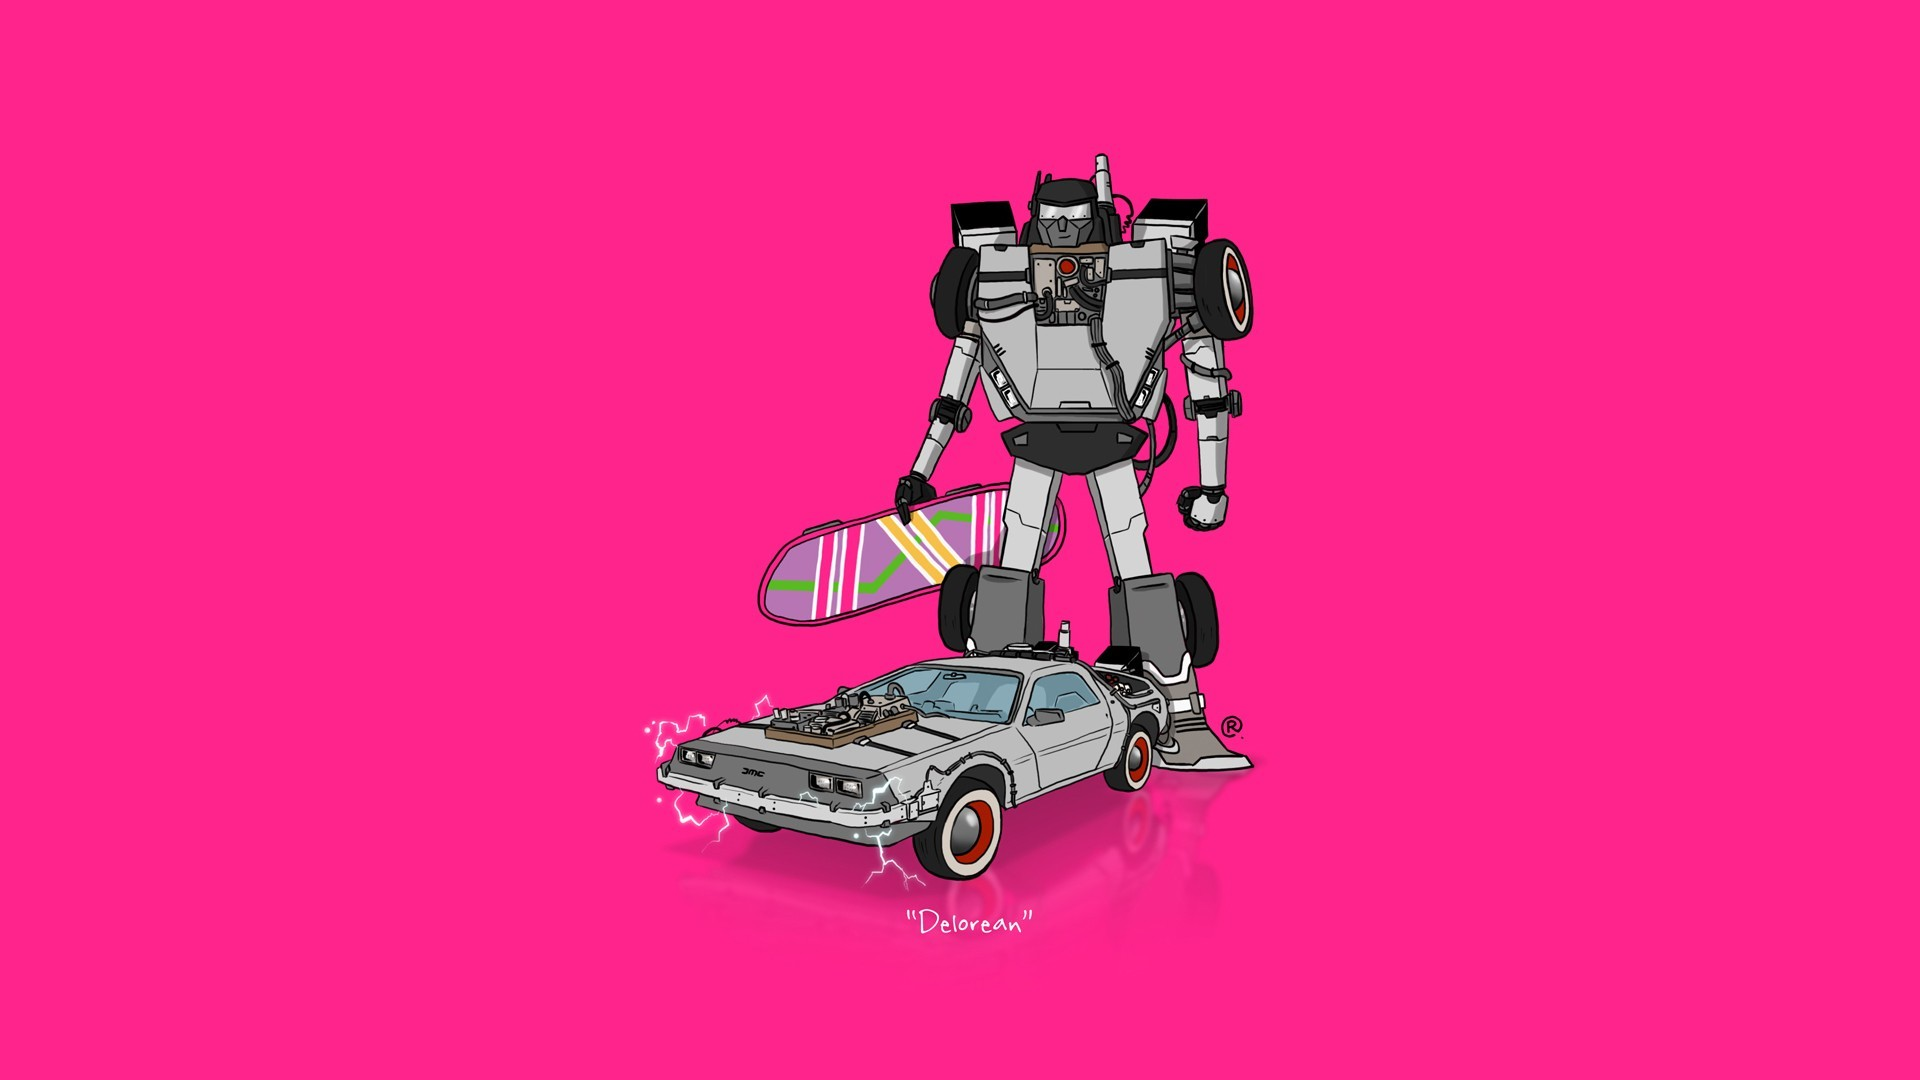 car, Transformers, Minimalism, DeLorean, Back To The Future Wallpapers HD /  Desktop and Mobile Backgrounds